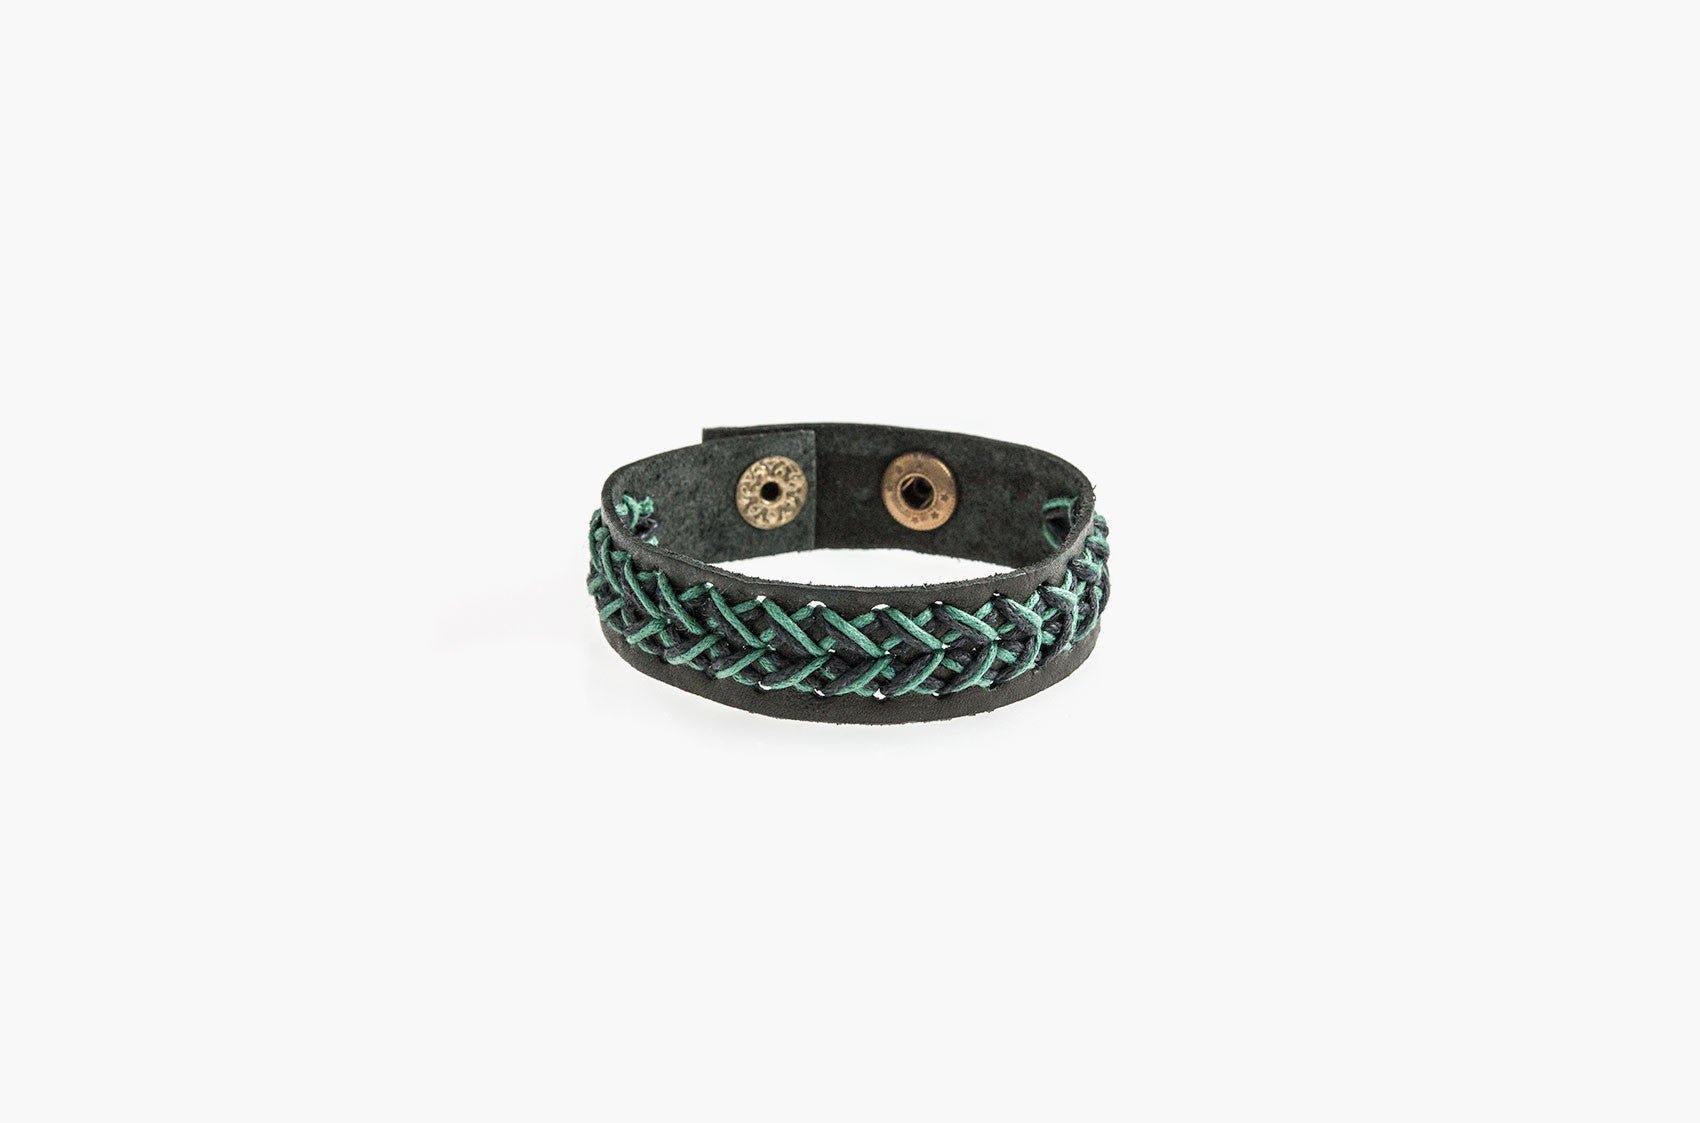 Black leather and green cord stitched bracelet